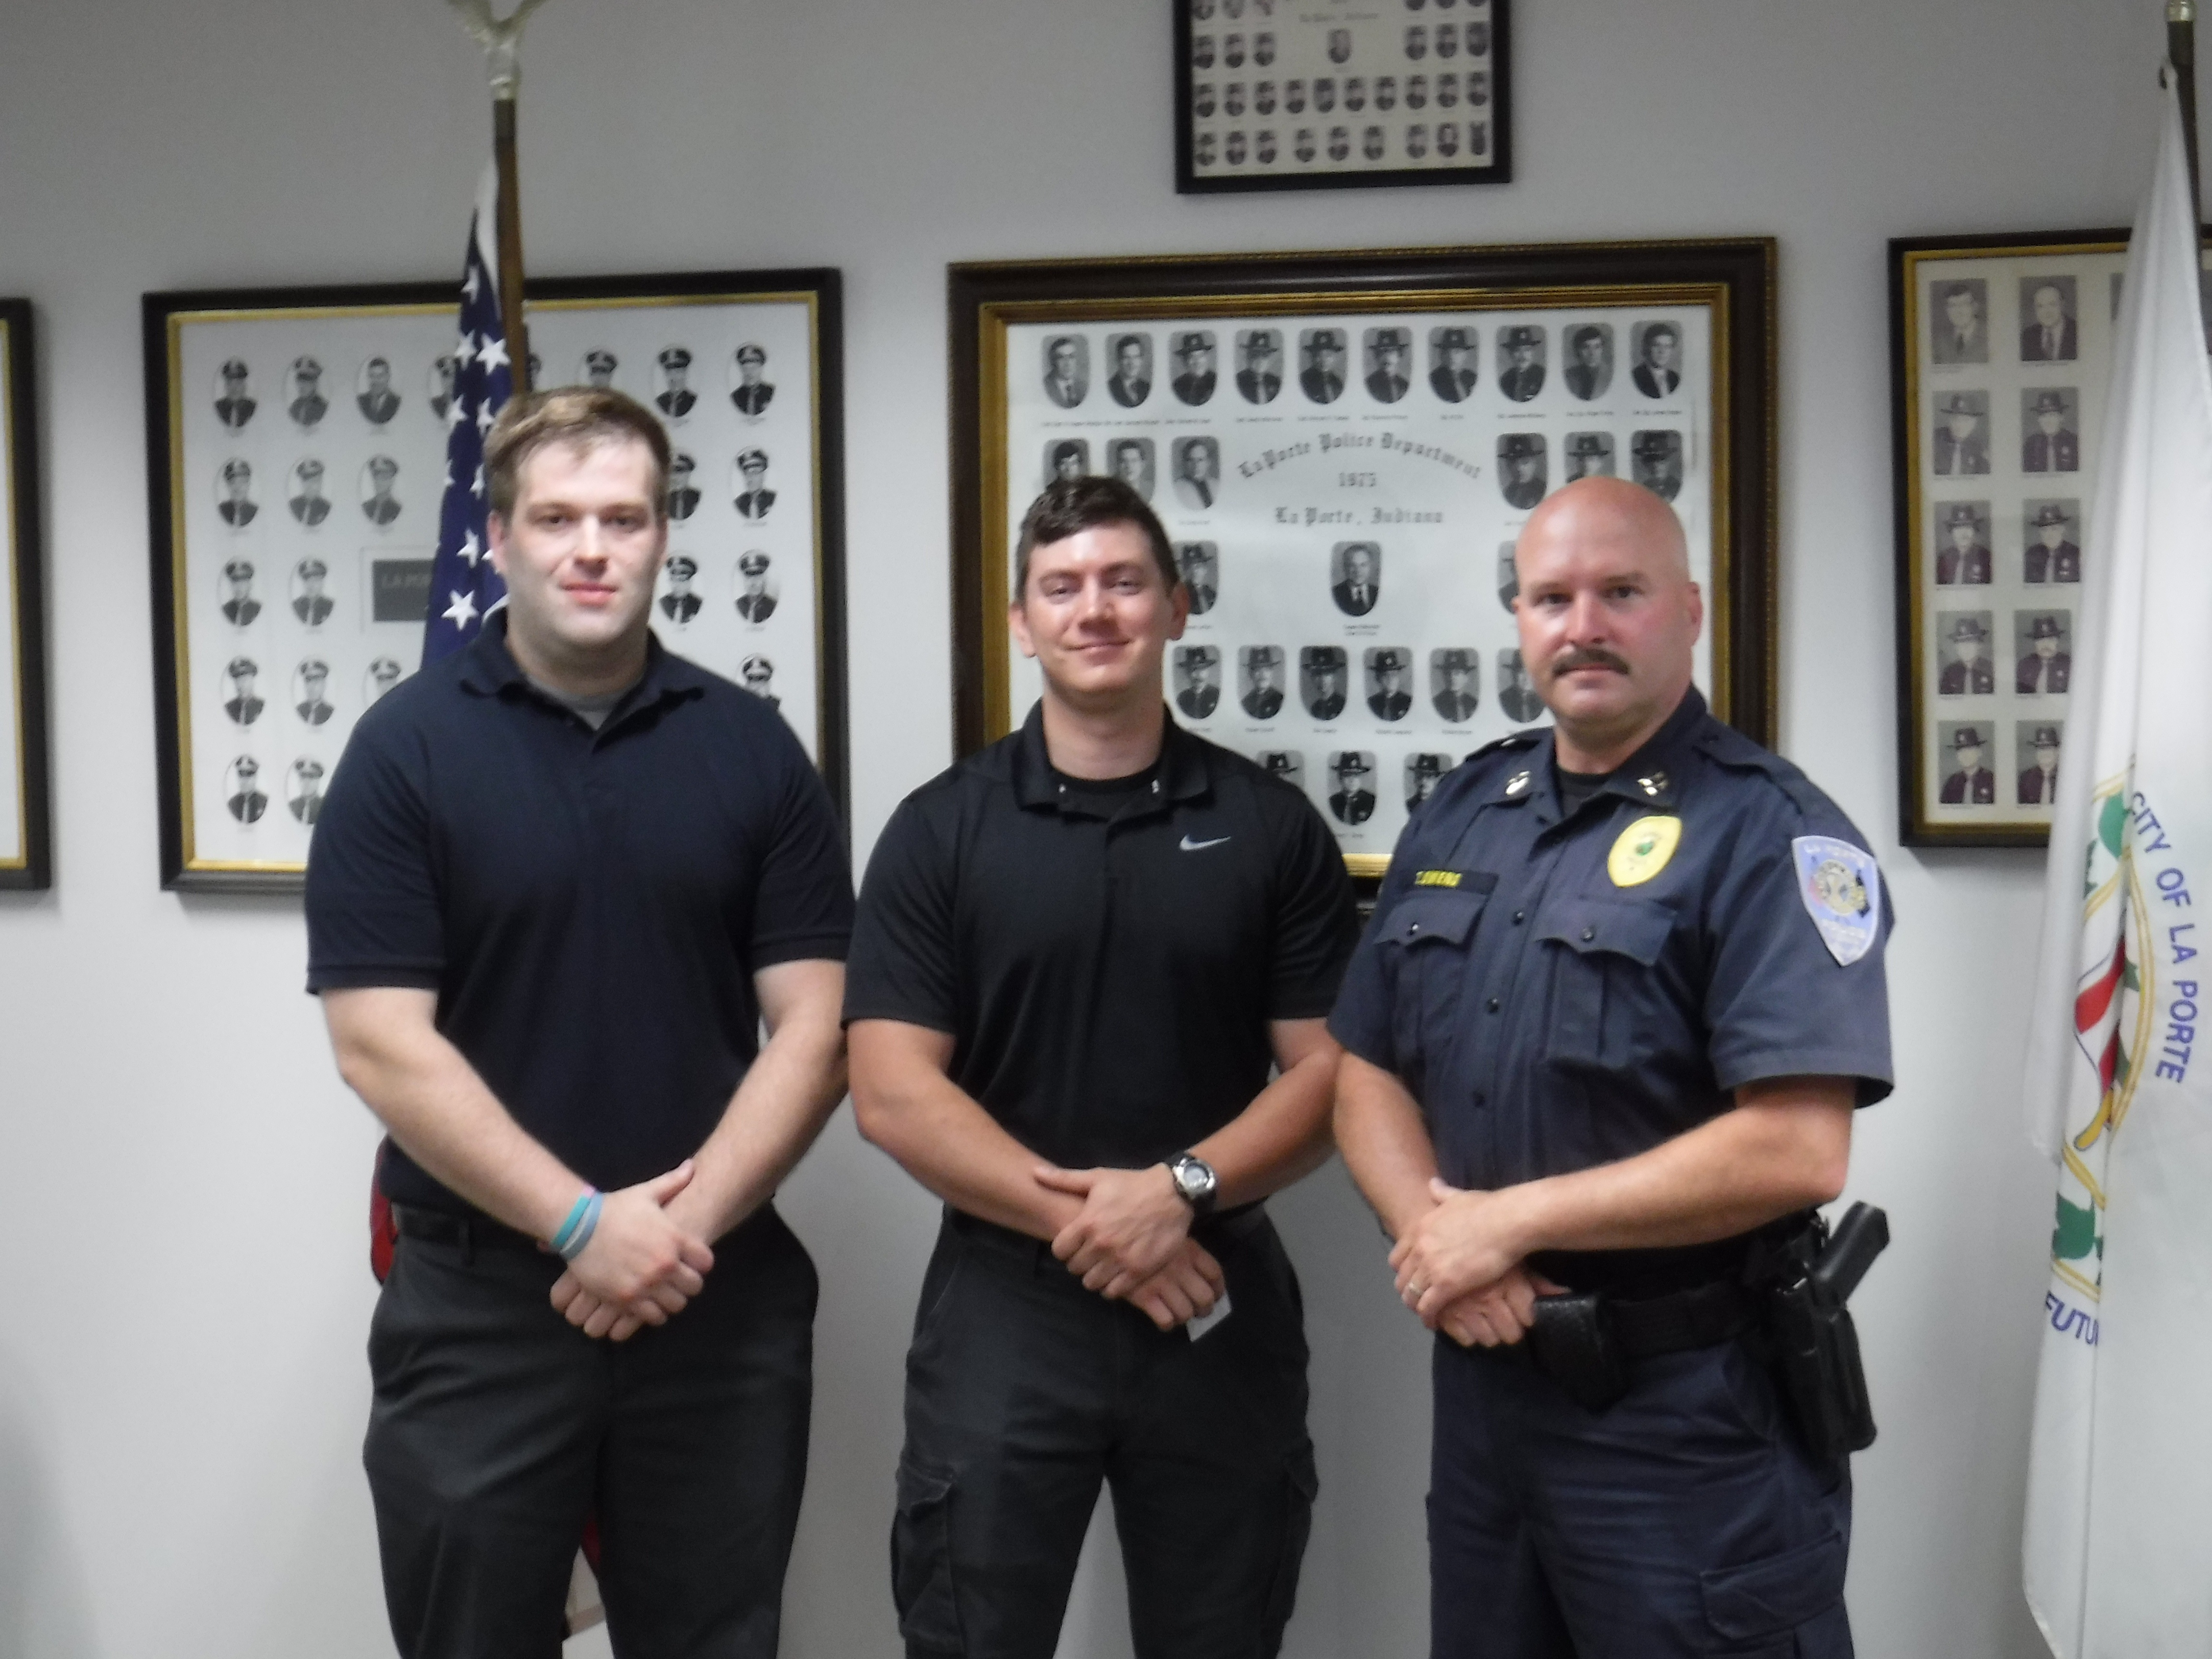 La Porte Police Department welcomes two new officers